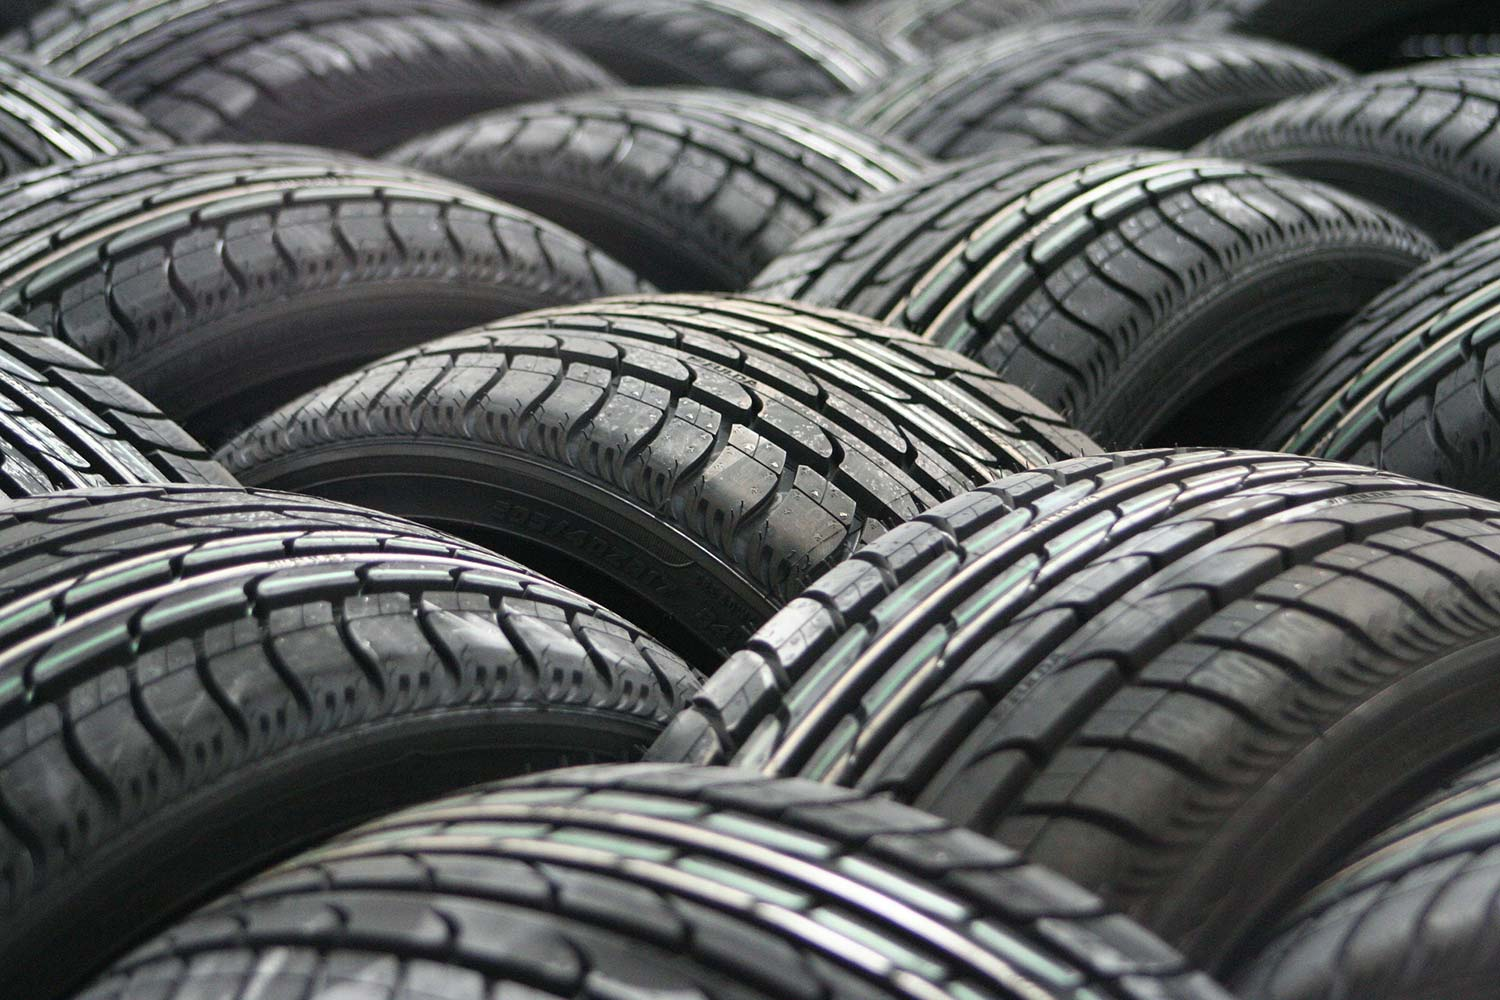 Tire Surveys/Inspections: What Can I Learn?